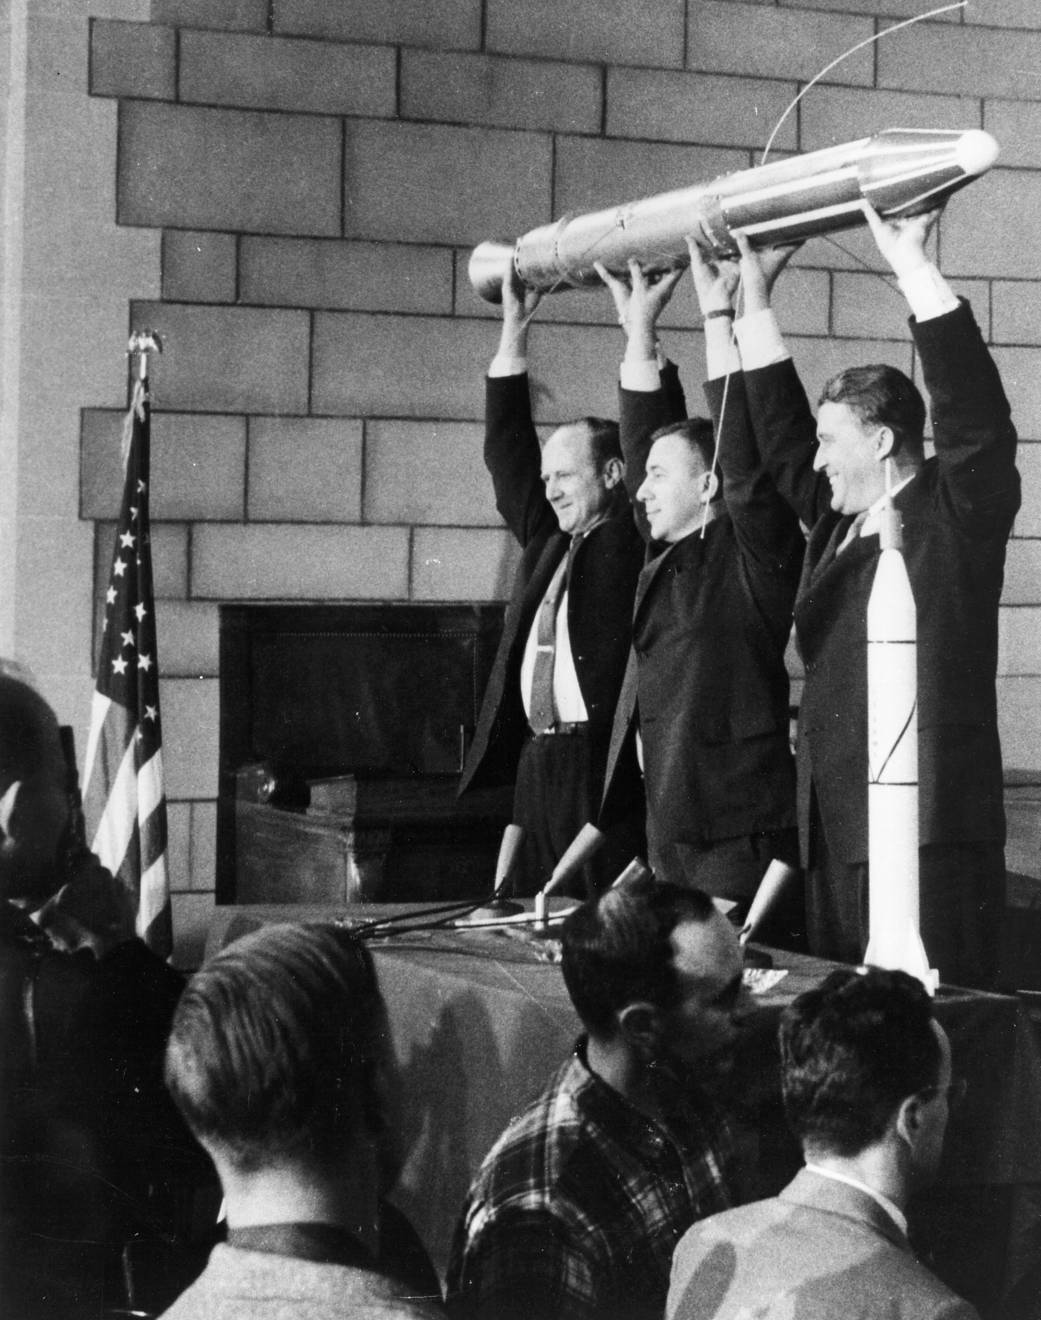 Model of Explorer 1 held up by three men at news conference